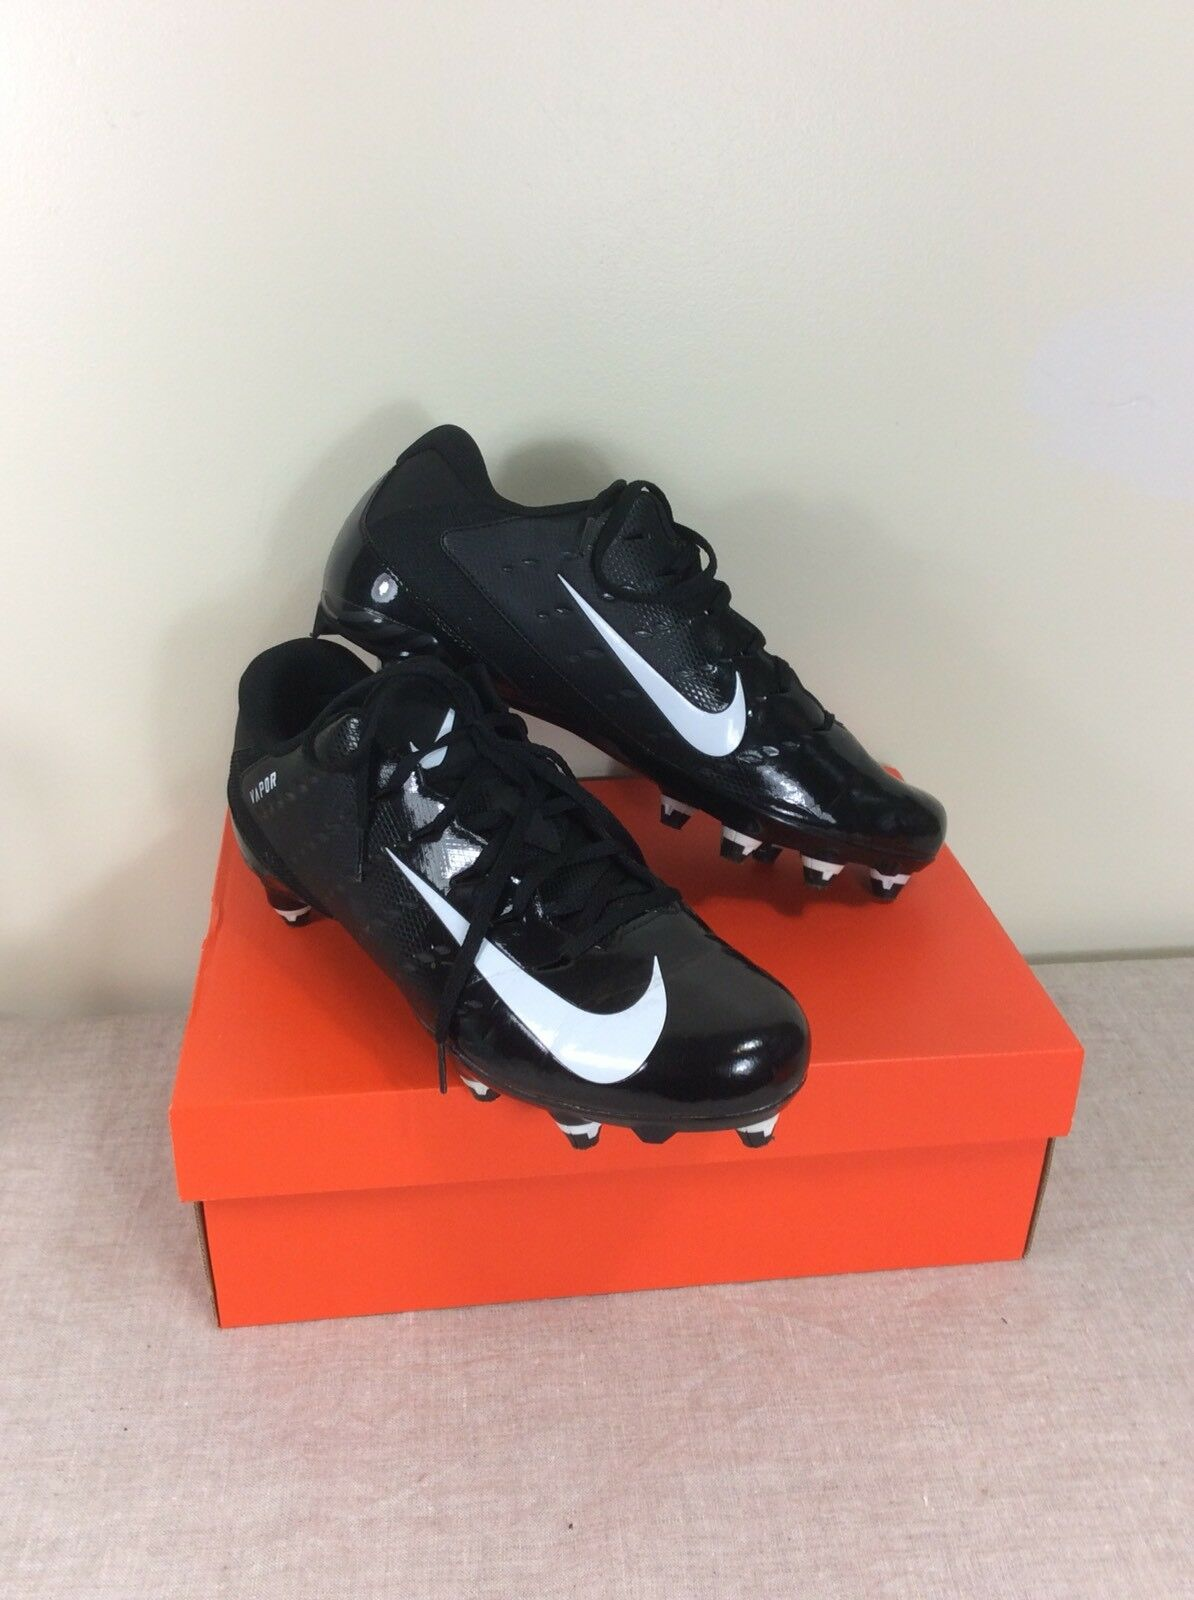 Nike hommes Football Cleats chaussures